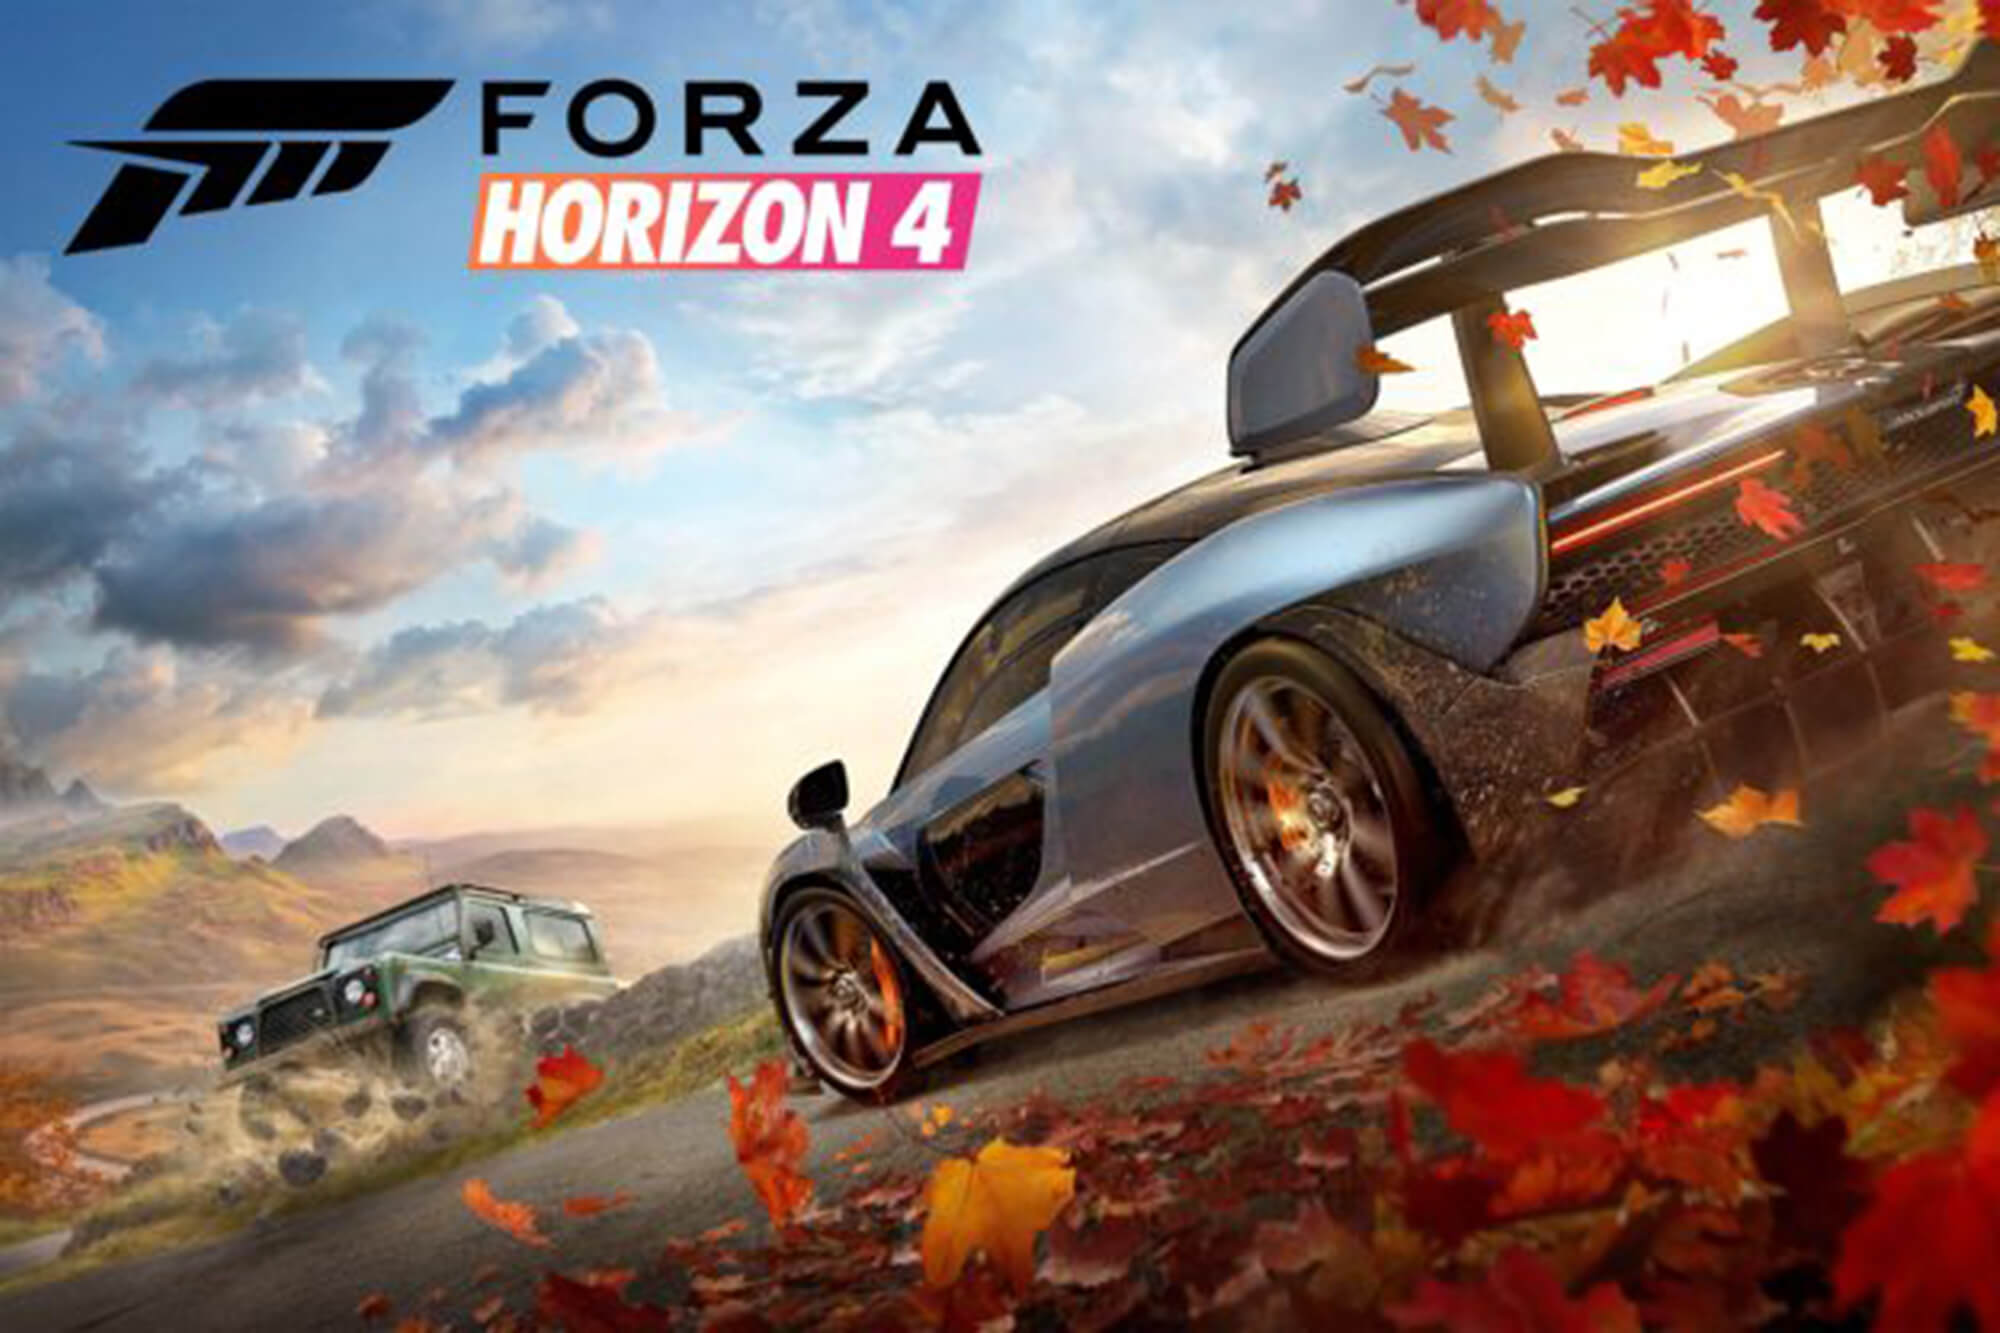 Screenshot of Xbox game Forza Horizon 4